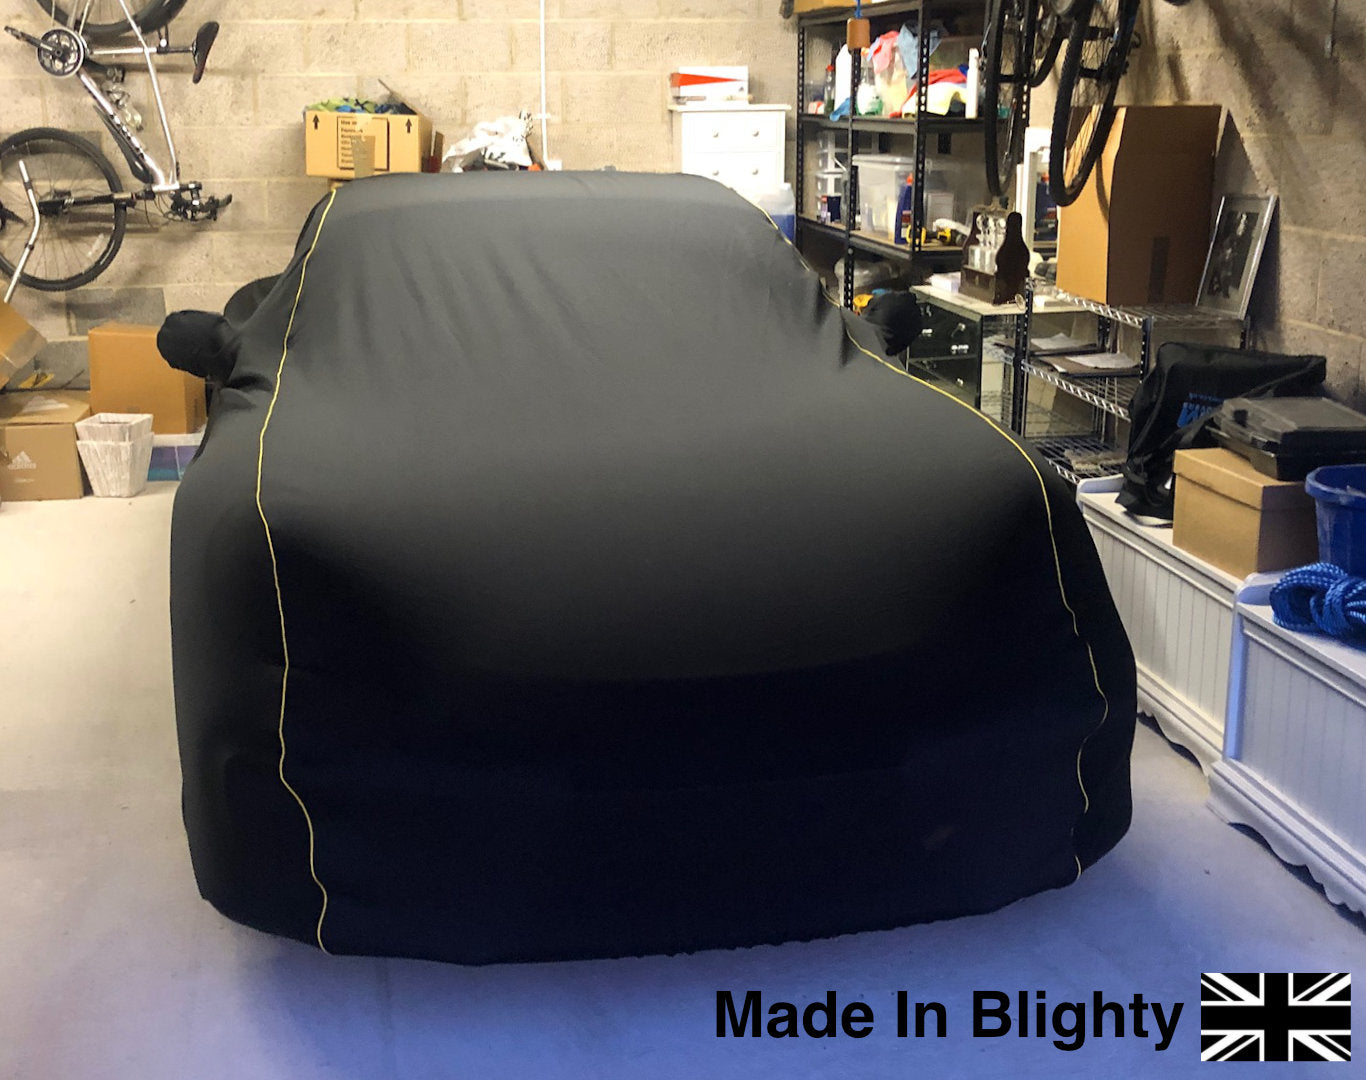 Made In Blighty - Bespoke Fleece Car Covers